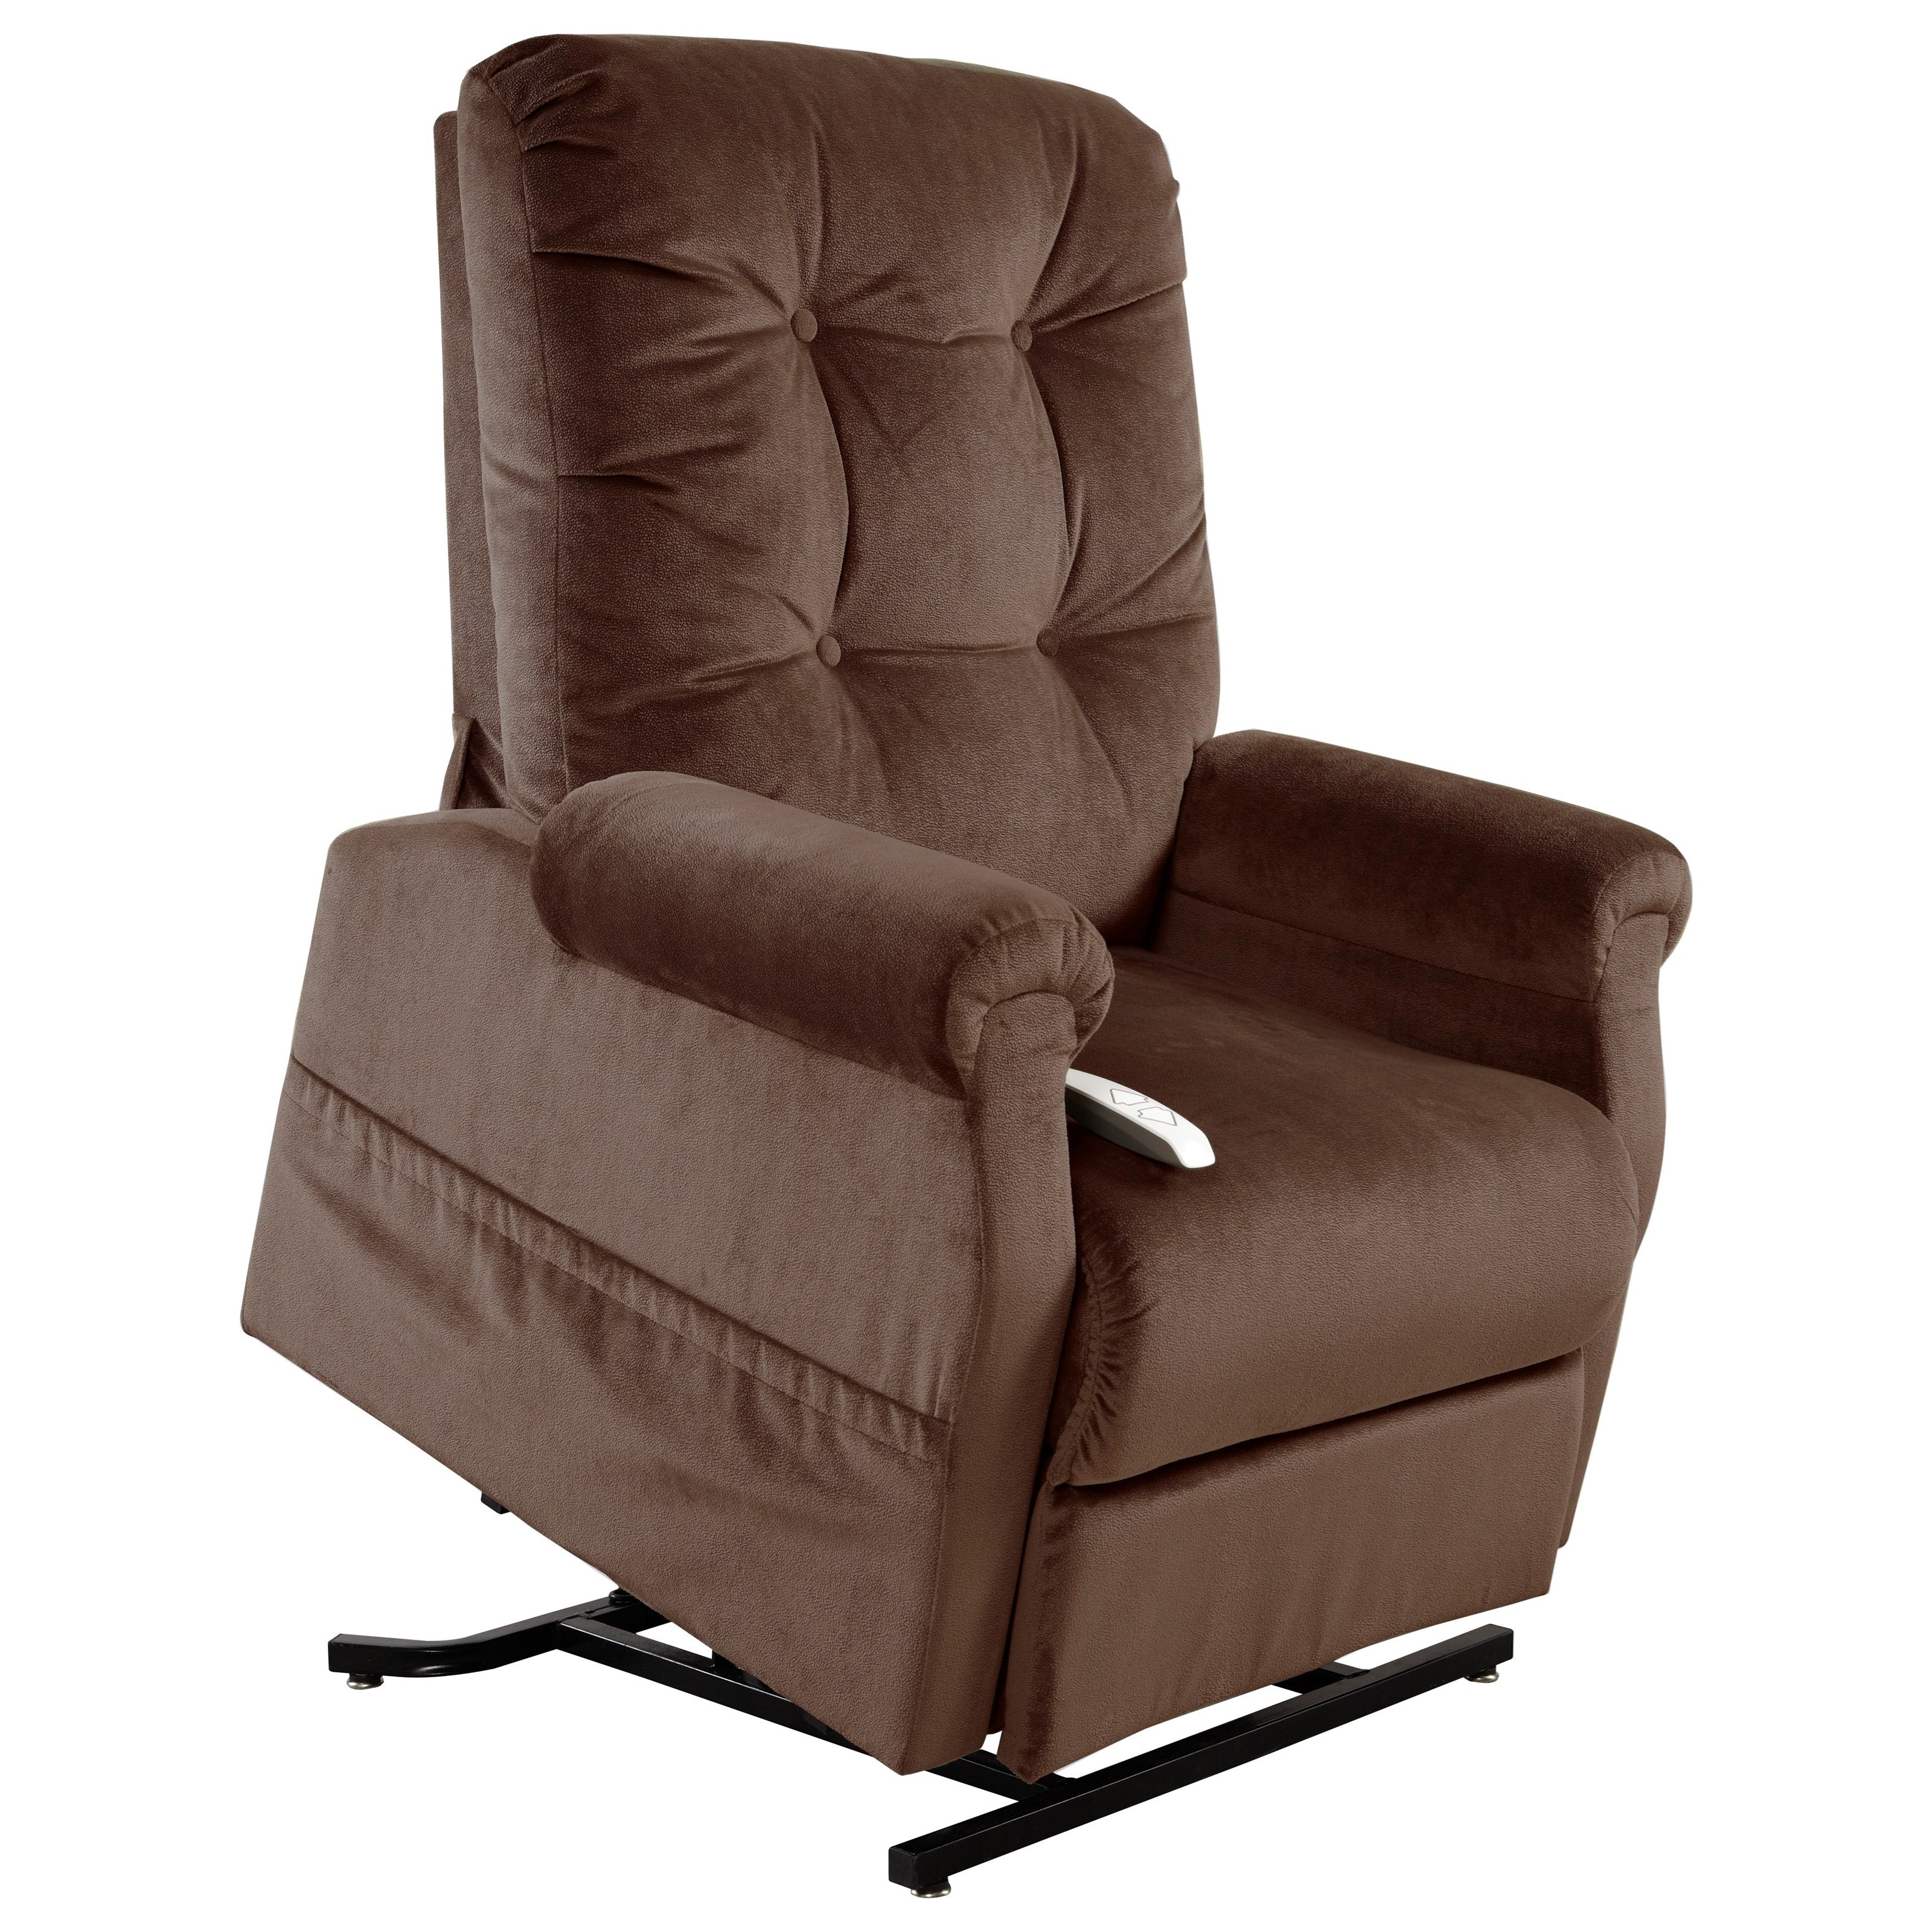 Windermere Motion Lift Chairs 3-Position Reclining Lift Chair with Power - Item Number: AS-4001 Chocolate